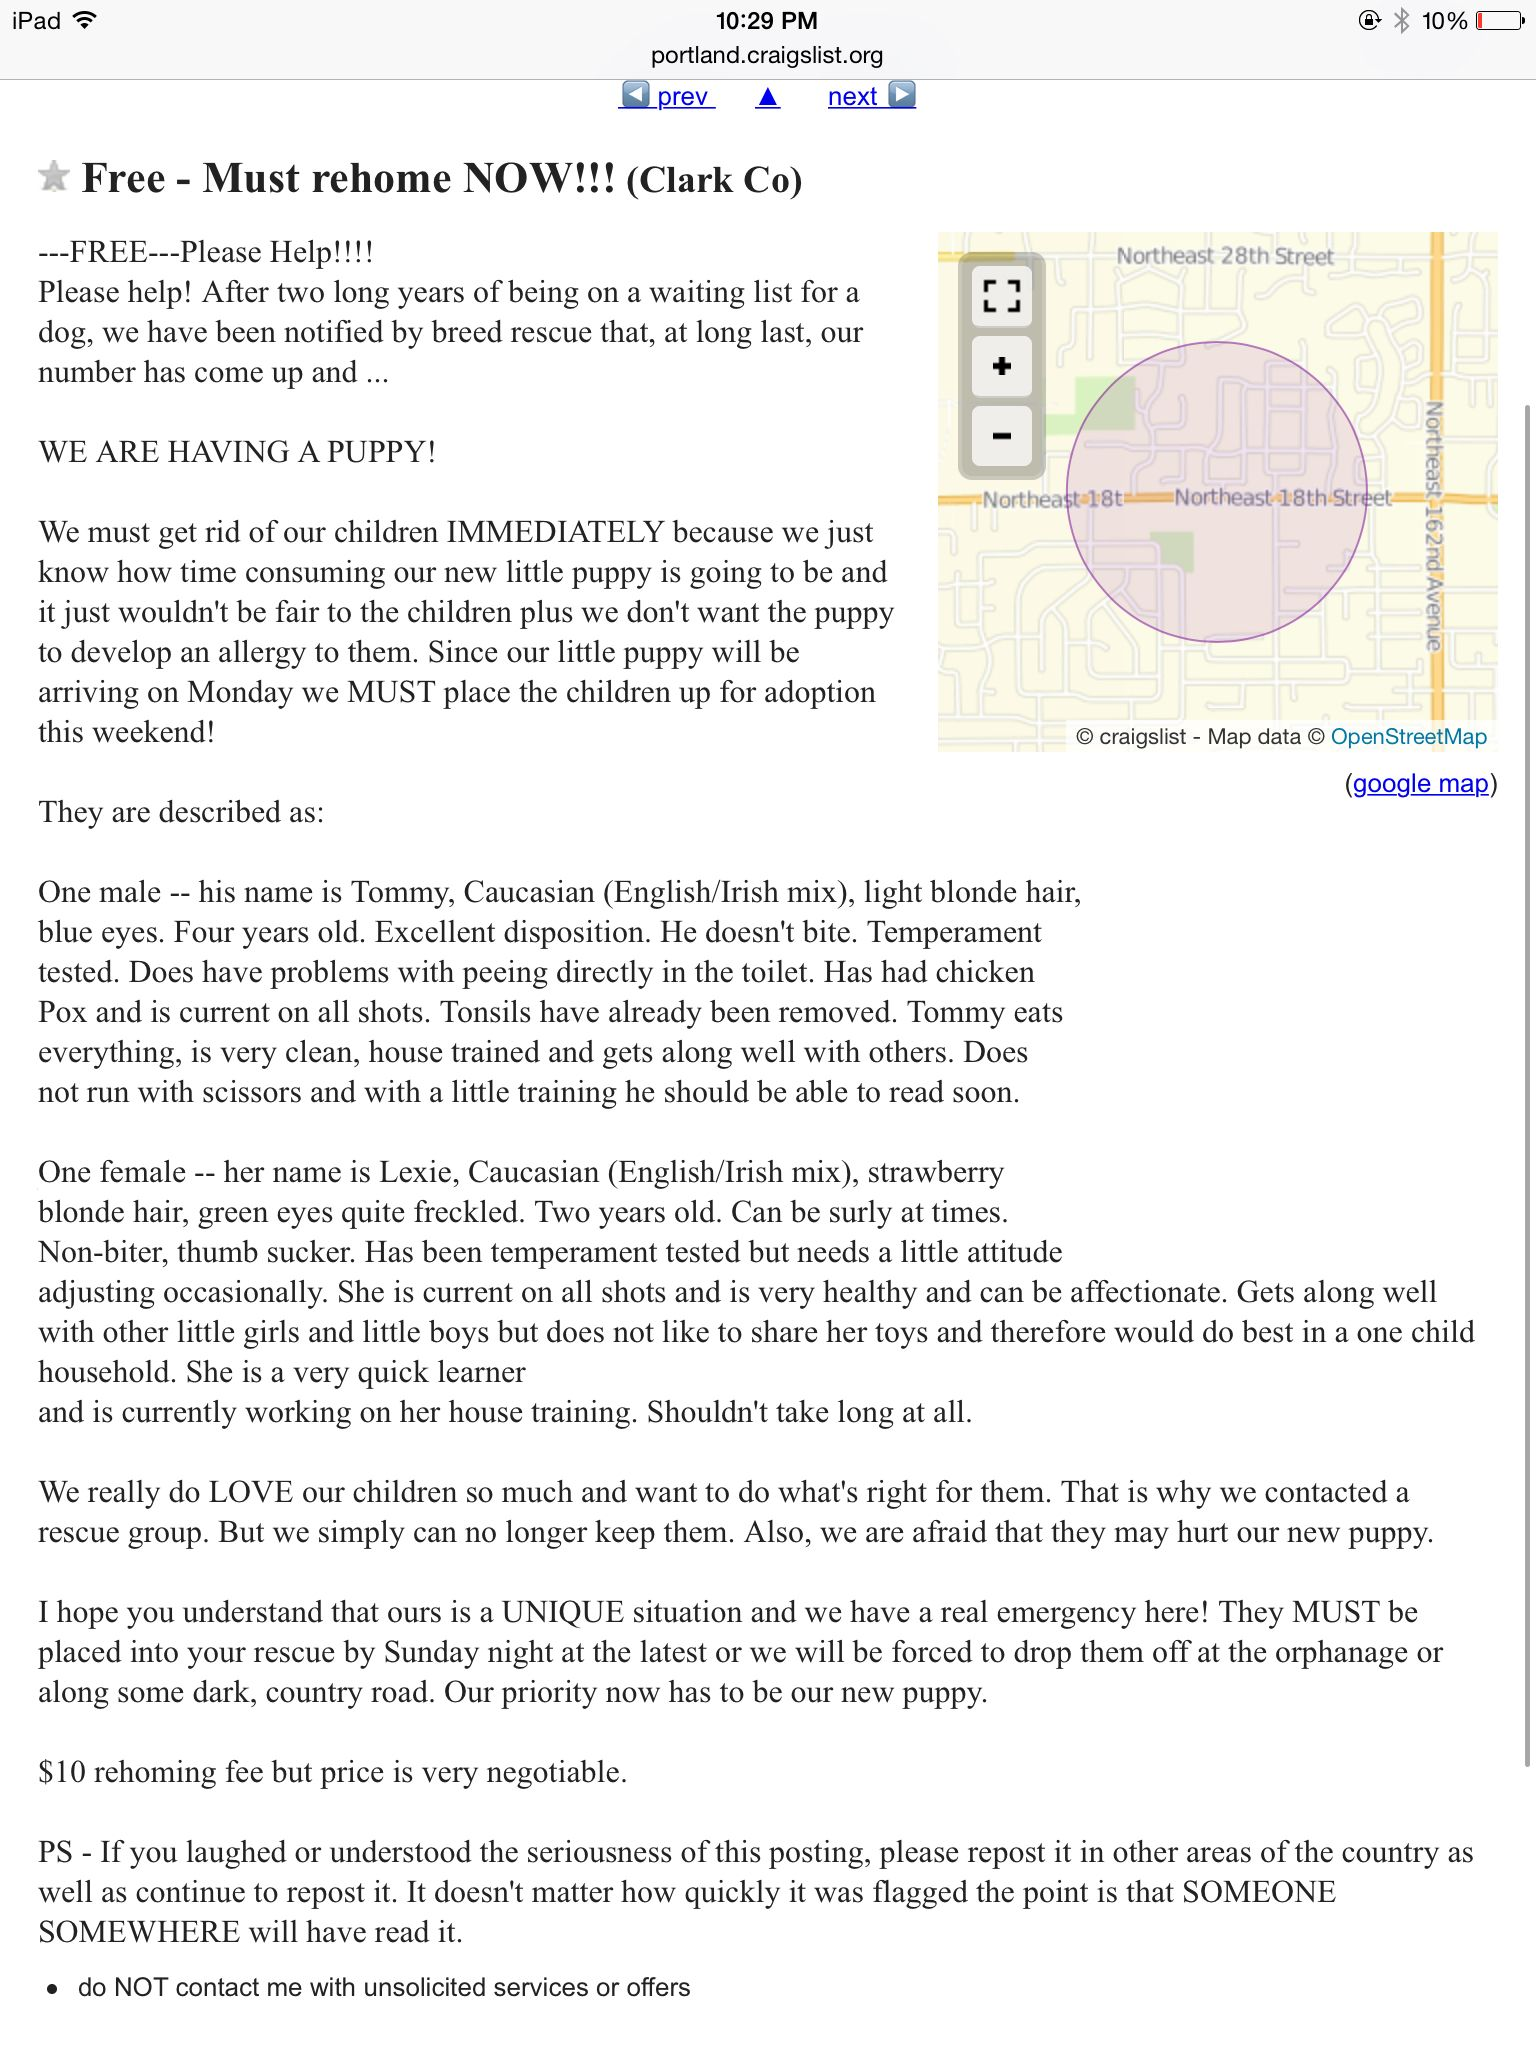 Craigslist ad for kids funniest thing must read